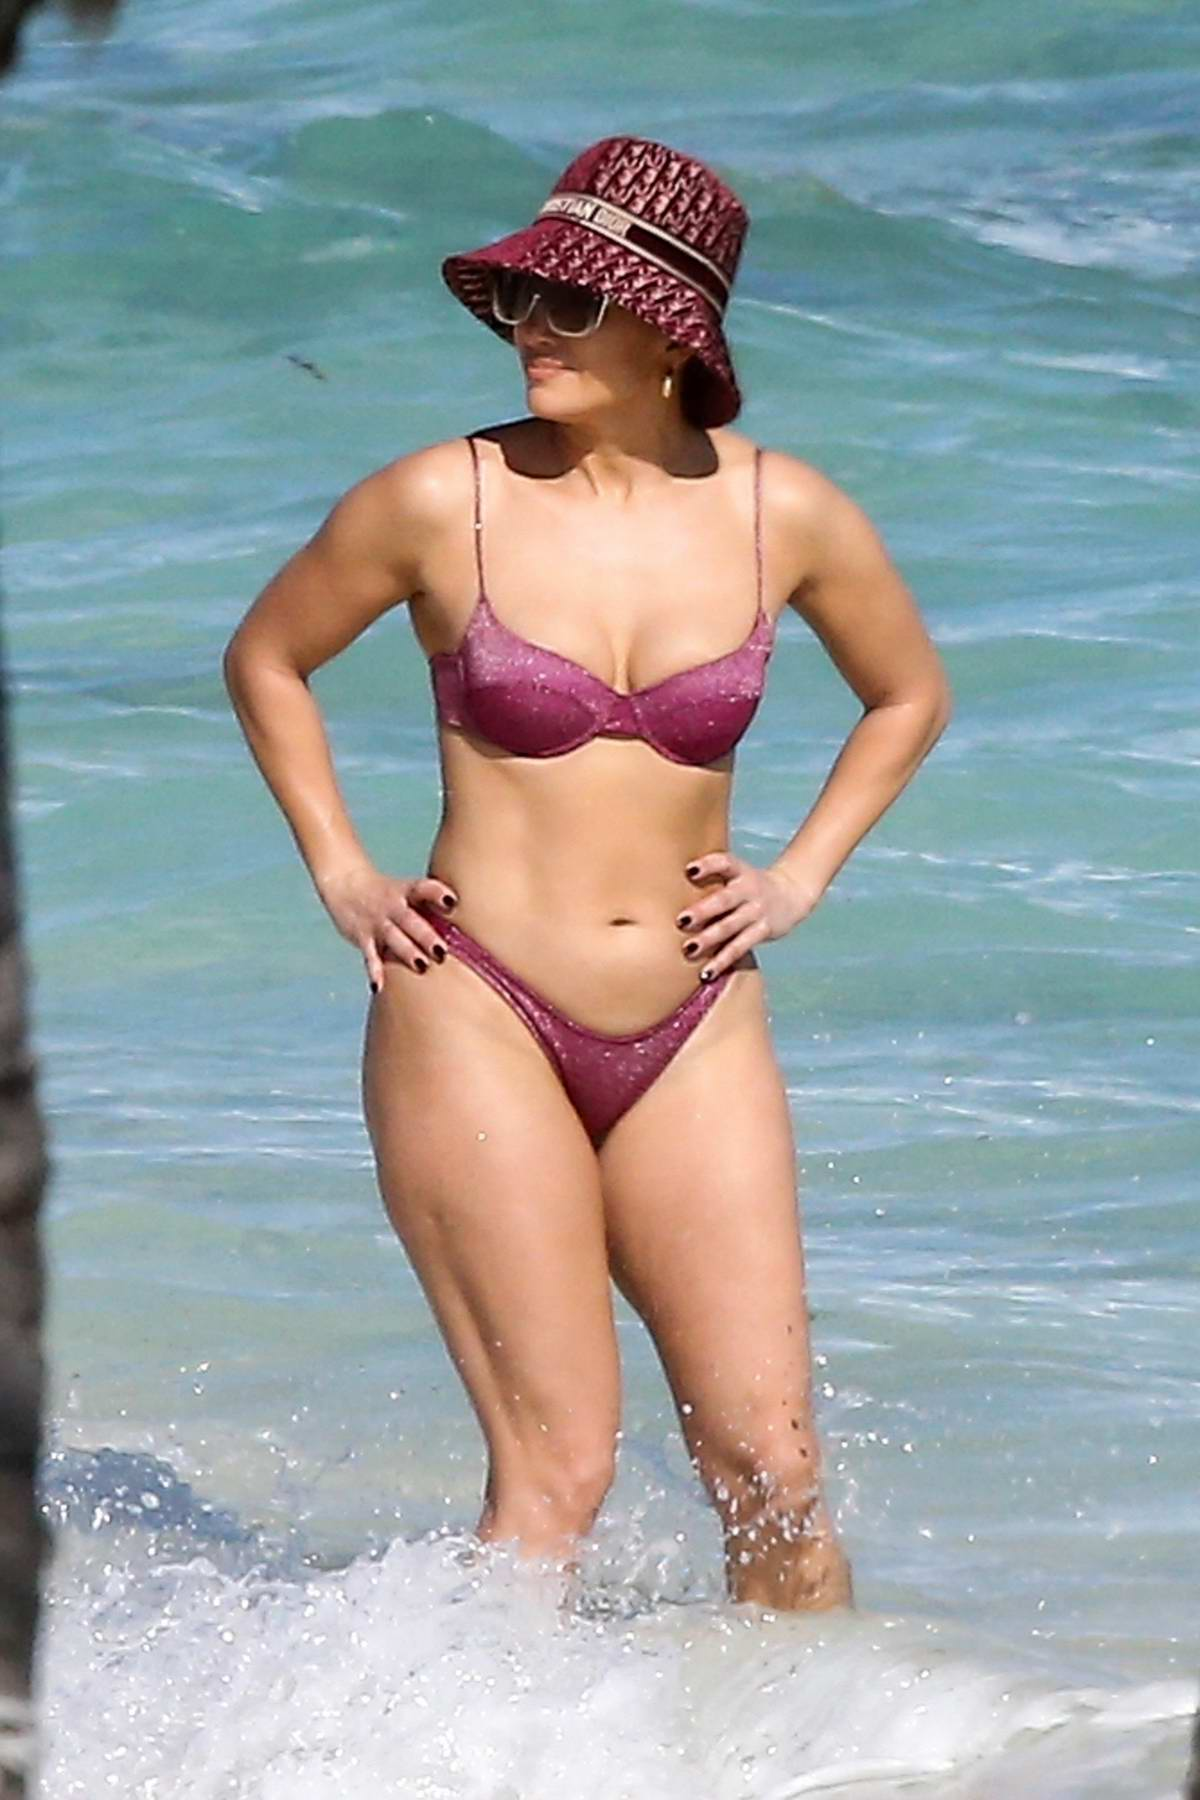 Jennifer Lopez shows off her incredible figure in a pink bikini while vacationing in Turks and Caicos